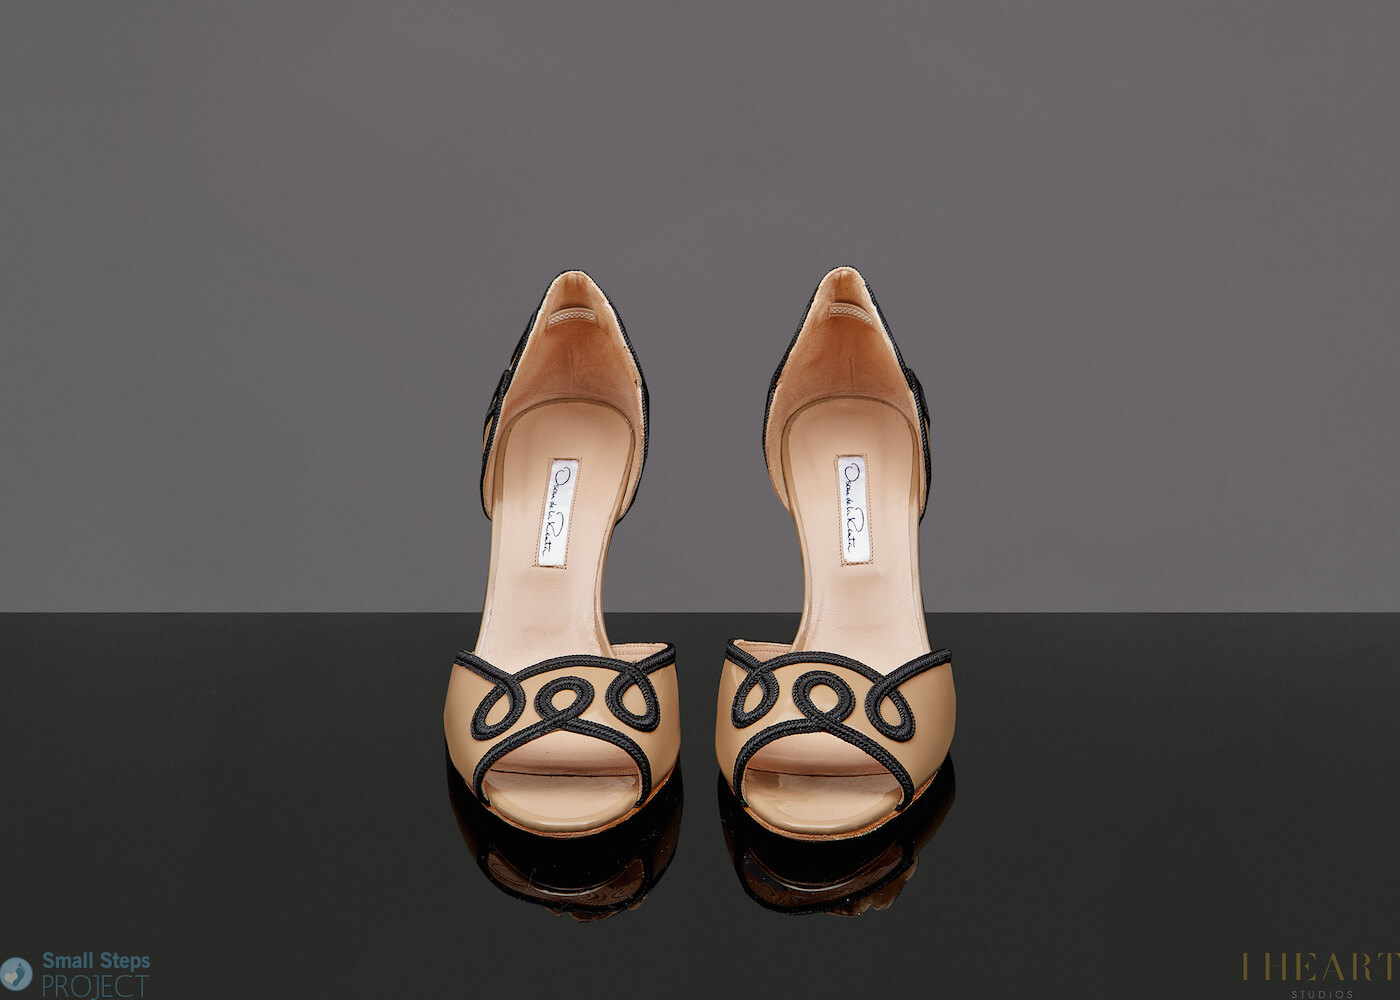 """In 2014, shedonated donated a very special pair of Oscar De La Renta heels in a size 39 and told us: """"I have worn these Oscar de La Renta shoes at several lovely parties. They're so chic and timeless and they hold a special place in my heart now that we lost the beautiful and talented designer. I felt like an elegant, yet playful lady everything time I wore them."""""""